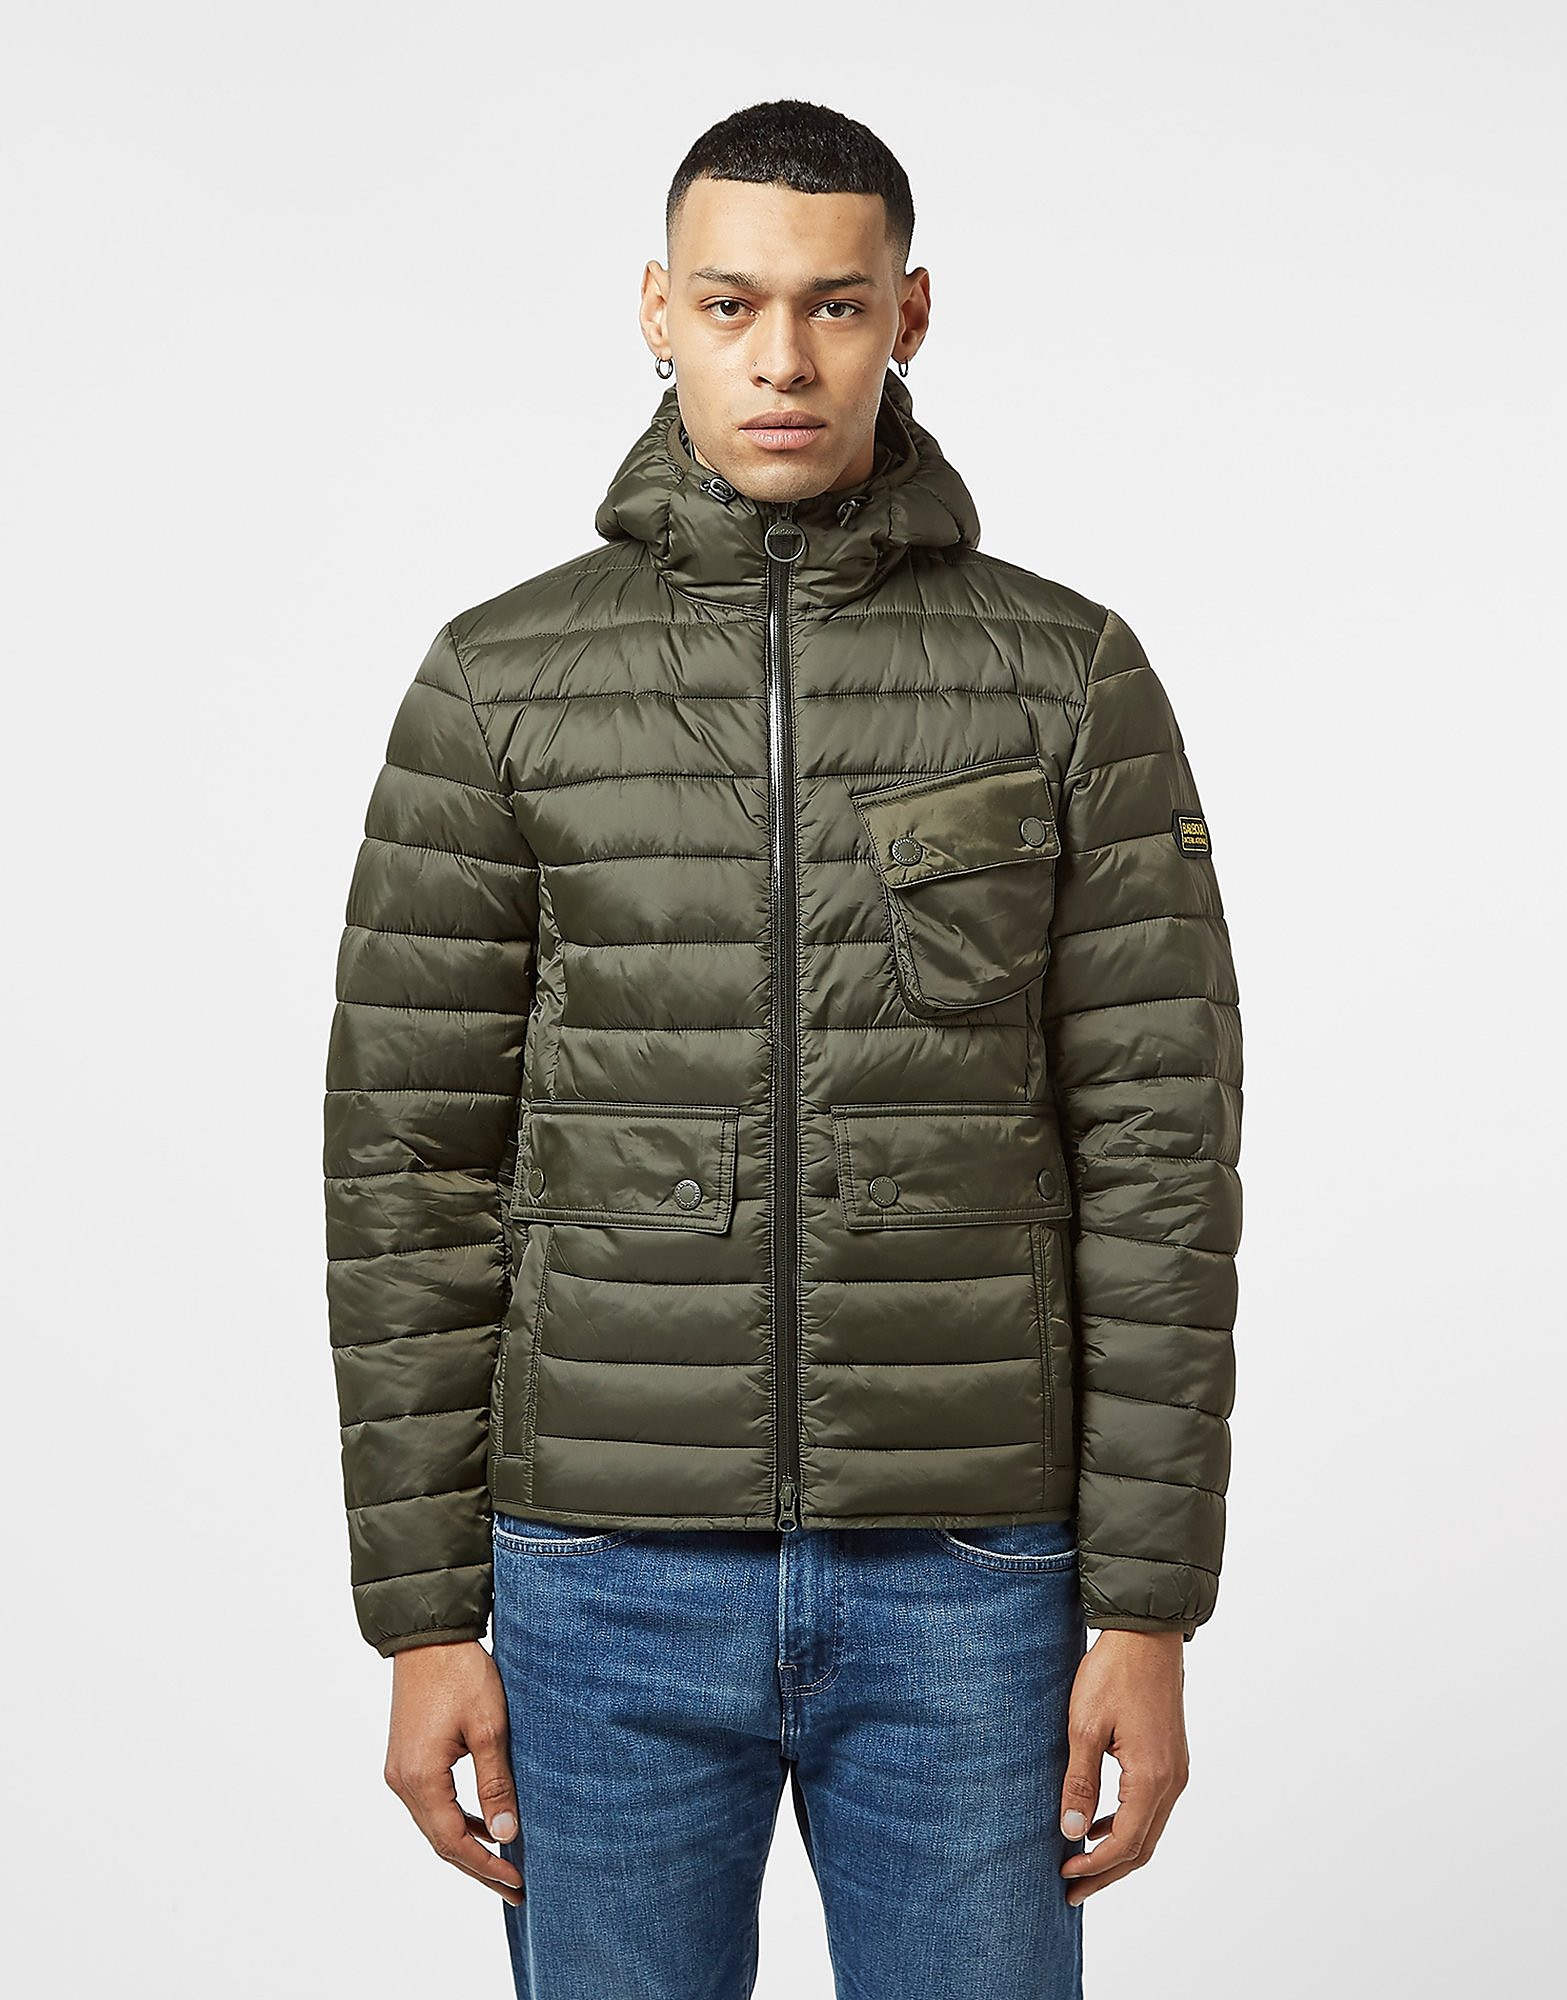 Barbour International Ouston Jacket - Exclusive